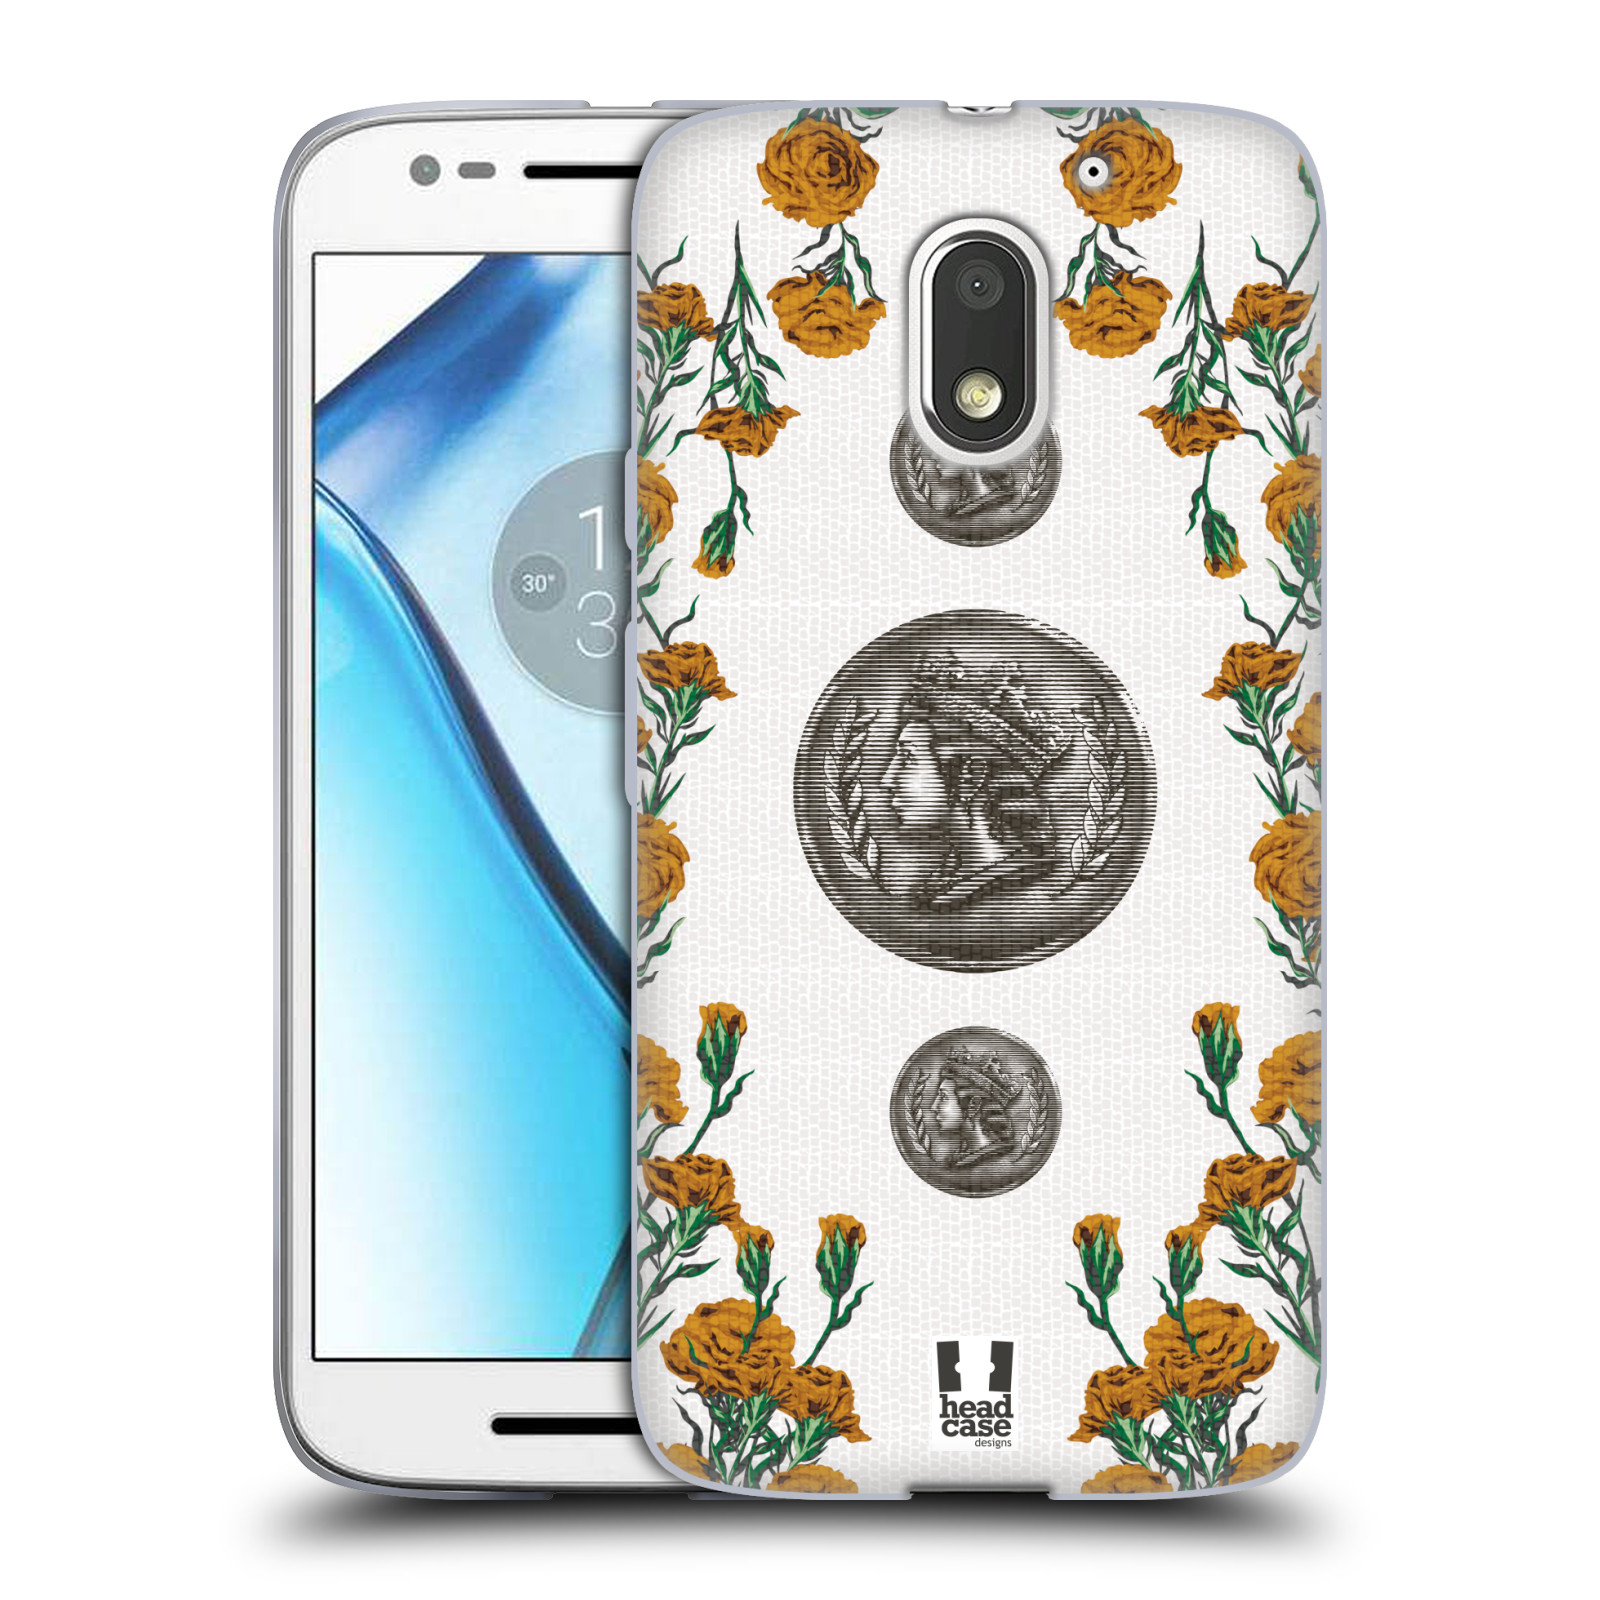 HEAD-CASE-DESIGNS-FLORAL-BRASS-SOFT-GEL-CASE-FOR-MOTOROLA-MOTO-E3